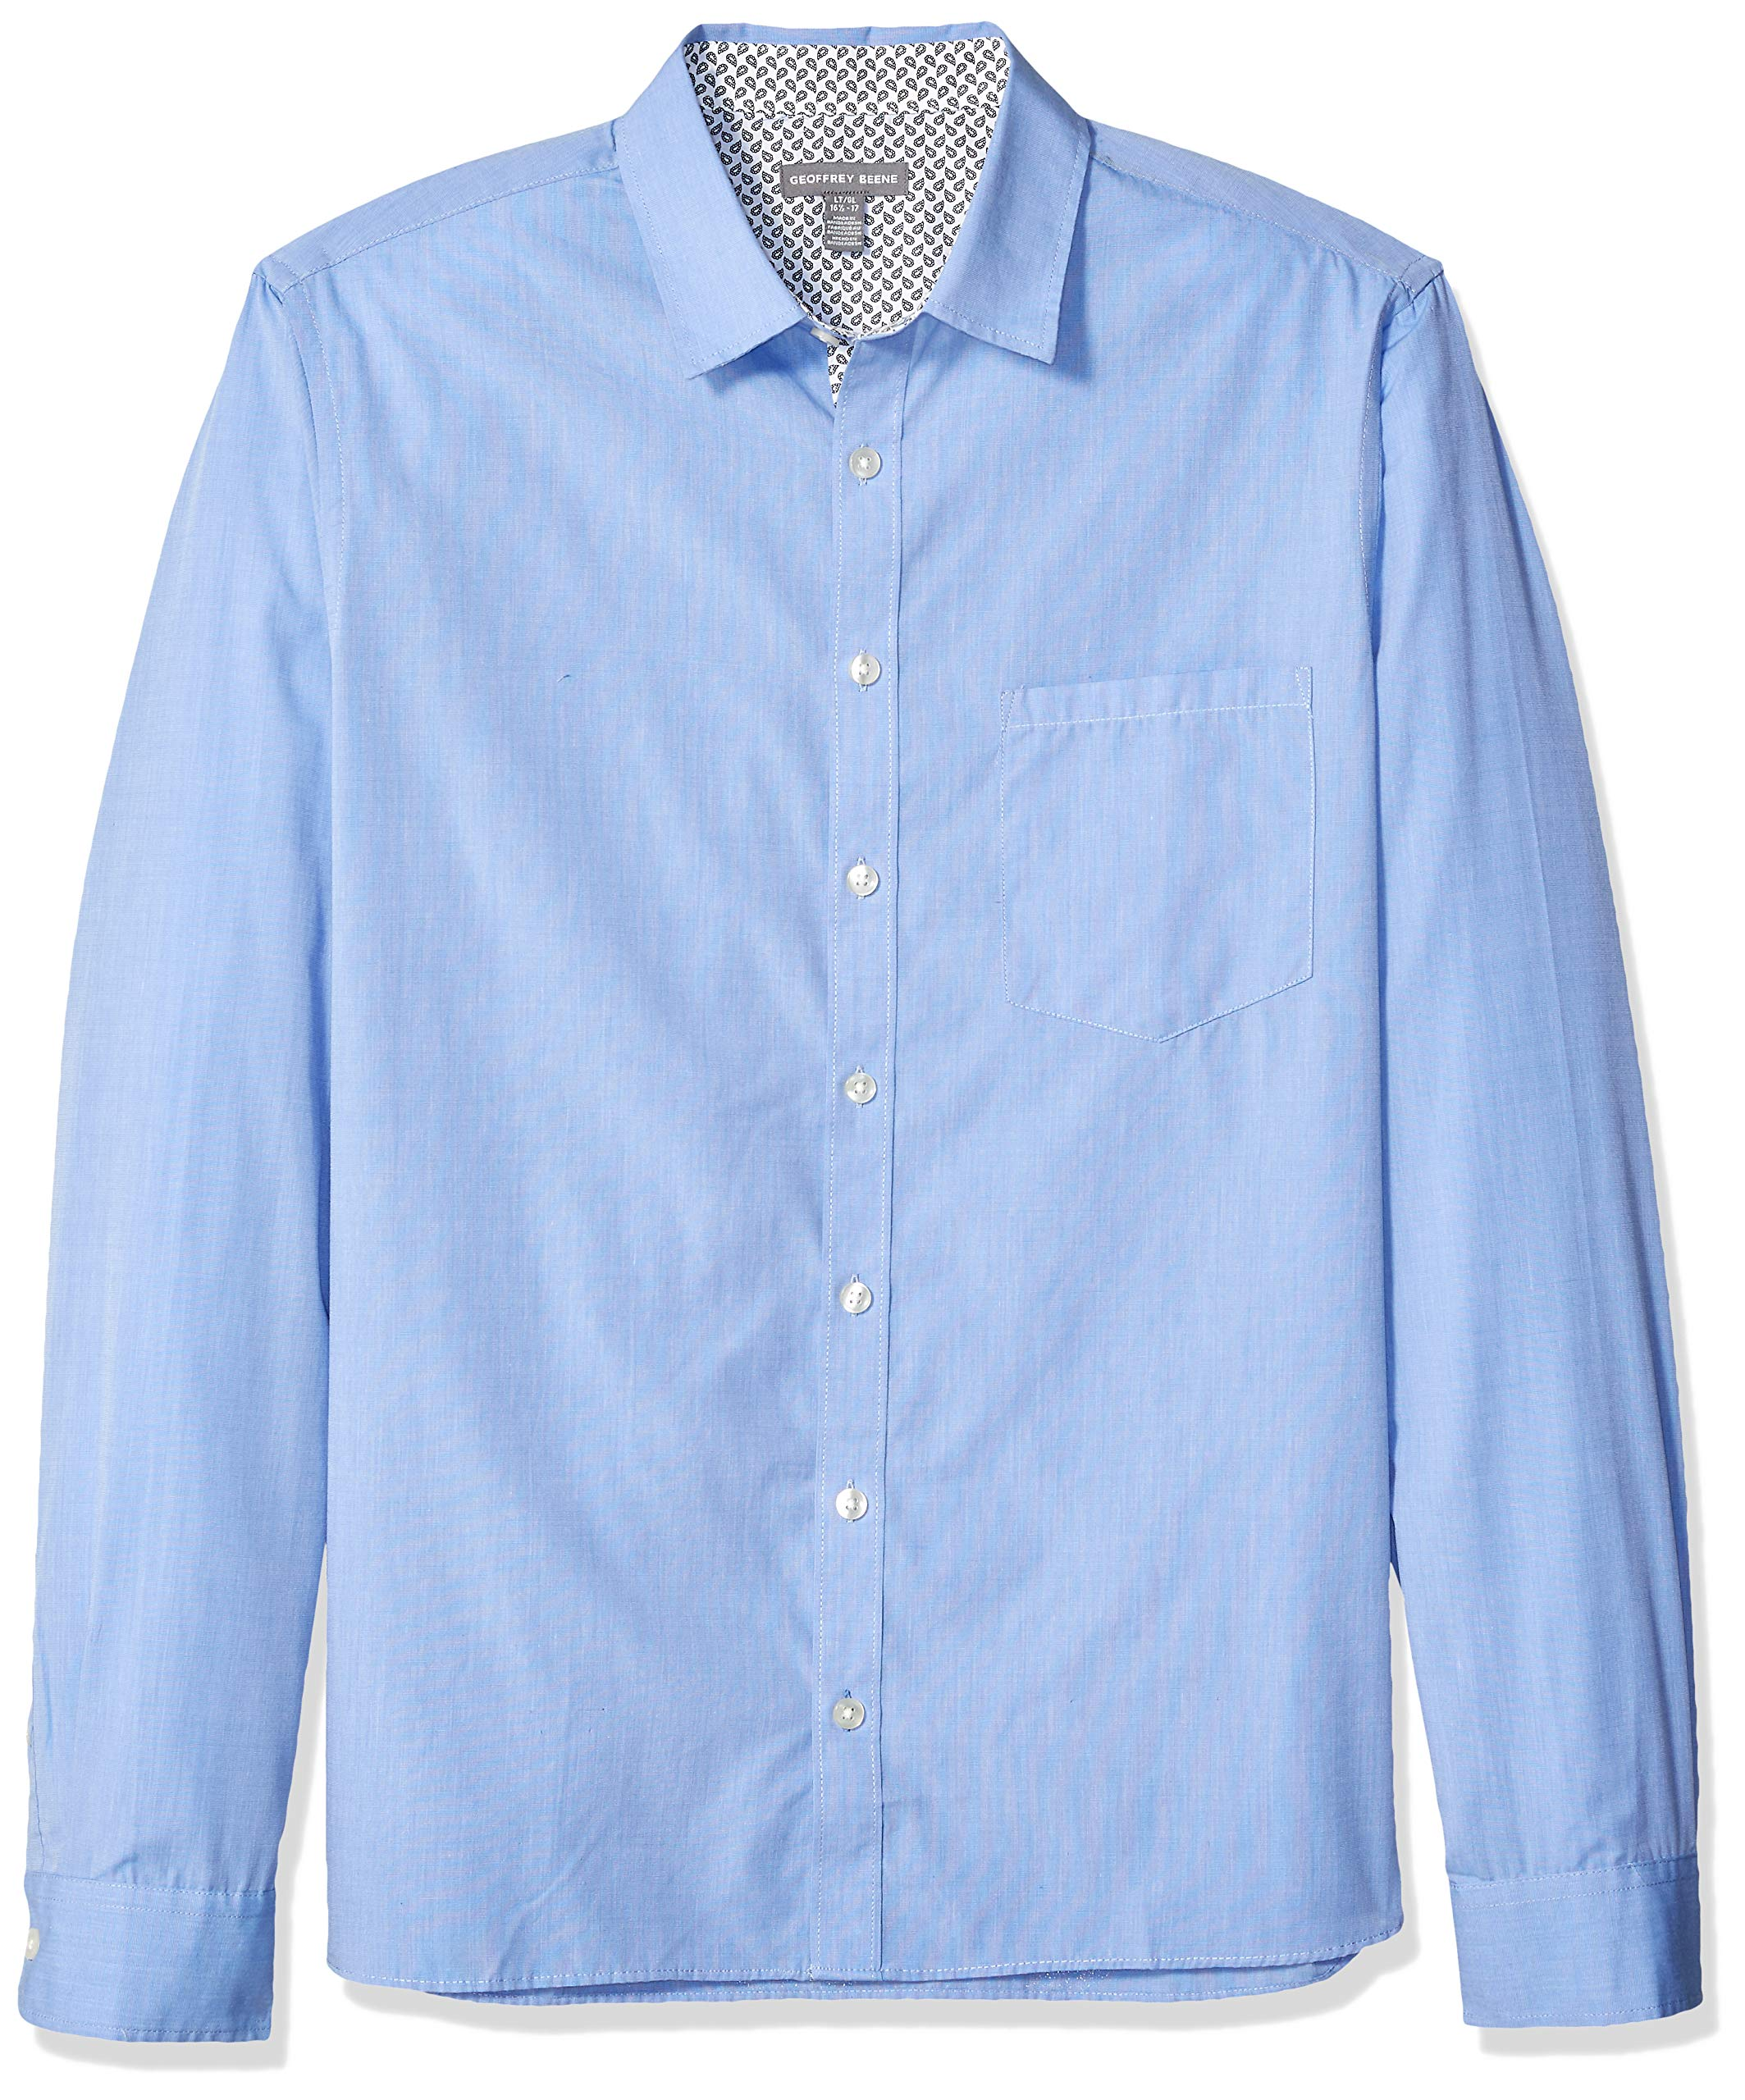 Geoffrey Beene Mens Big and Tall Easy Care Long Sleeve Button Down Shirt